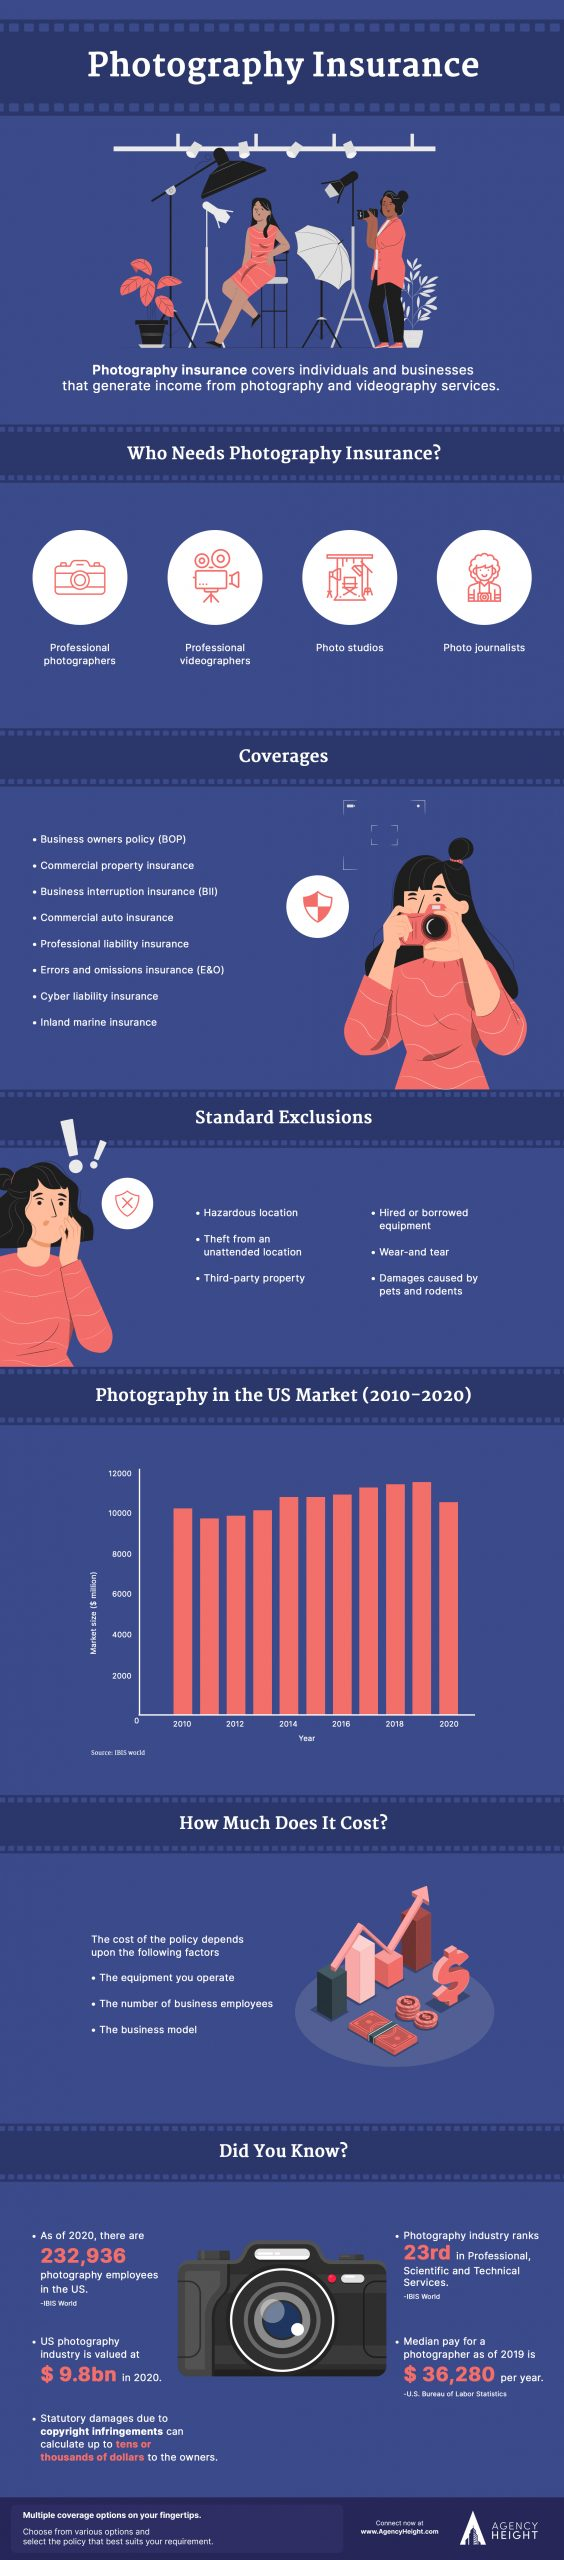 infographic photography insurance